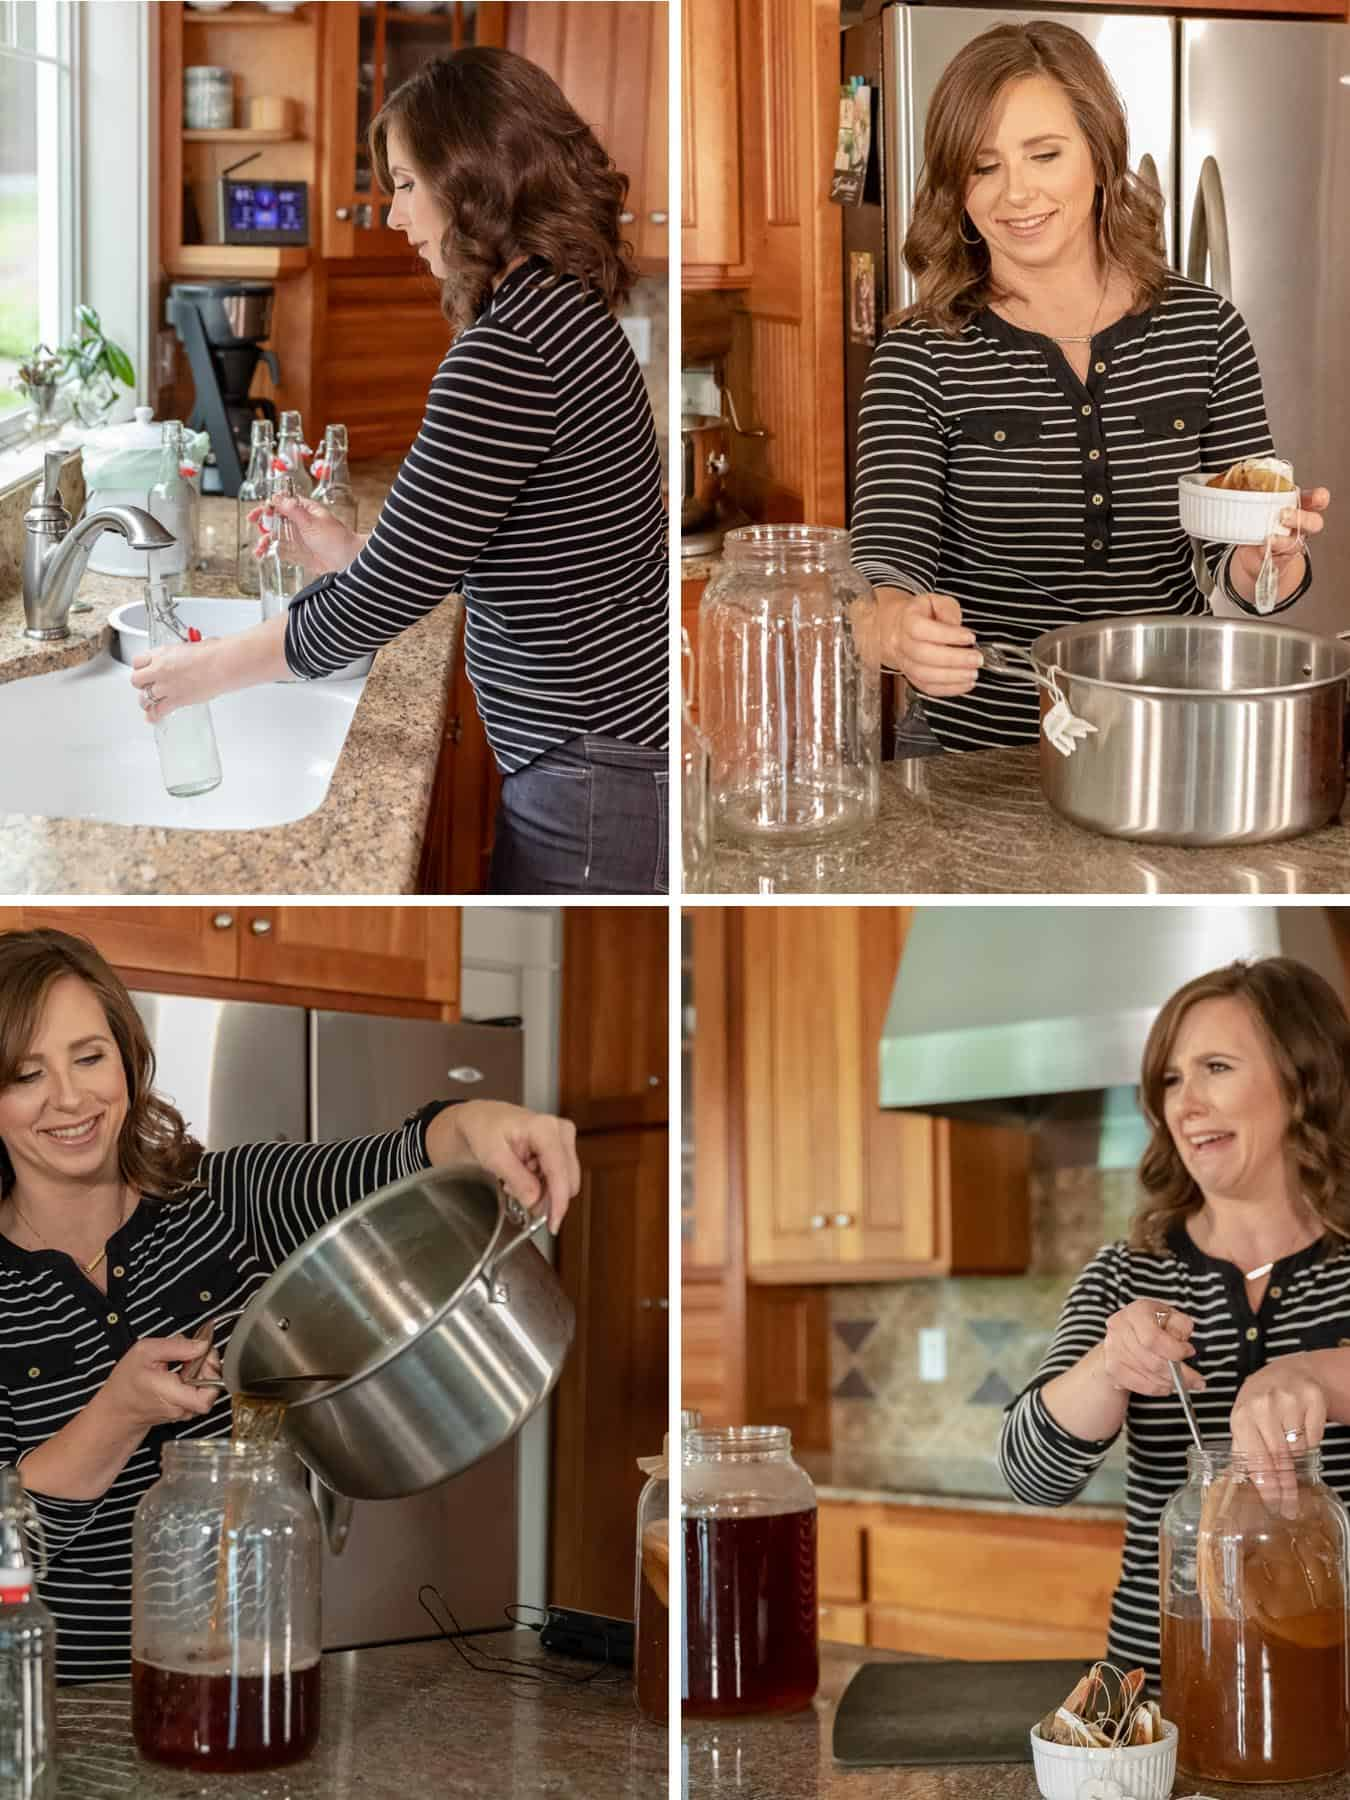 photos of me making kombucha from sweet tea